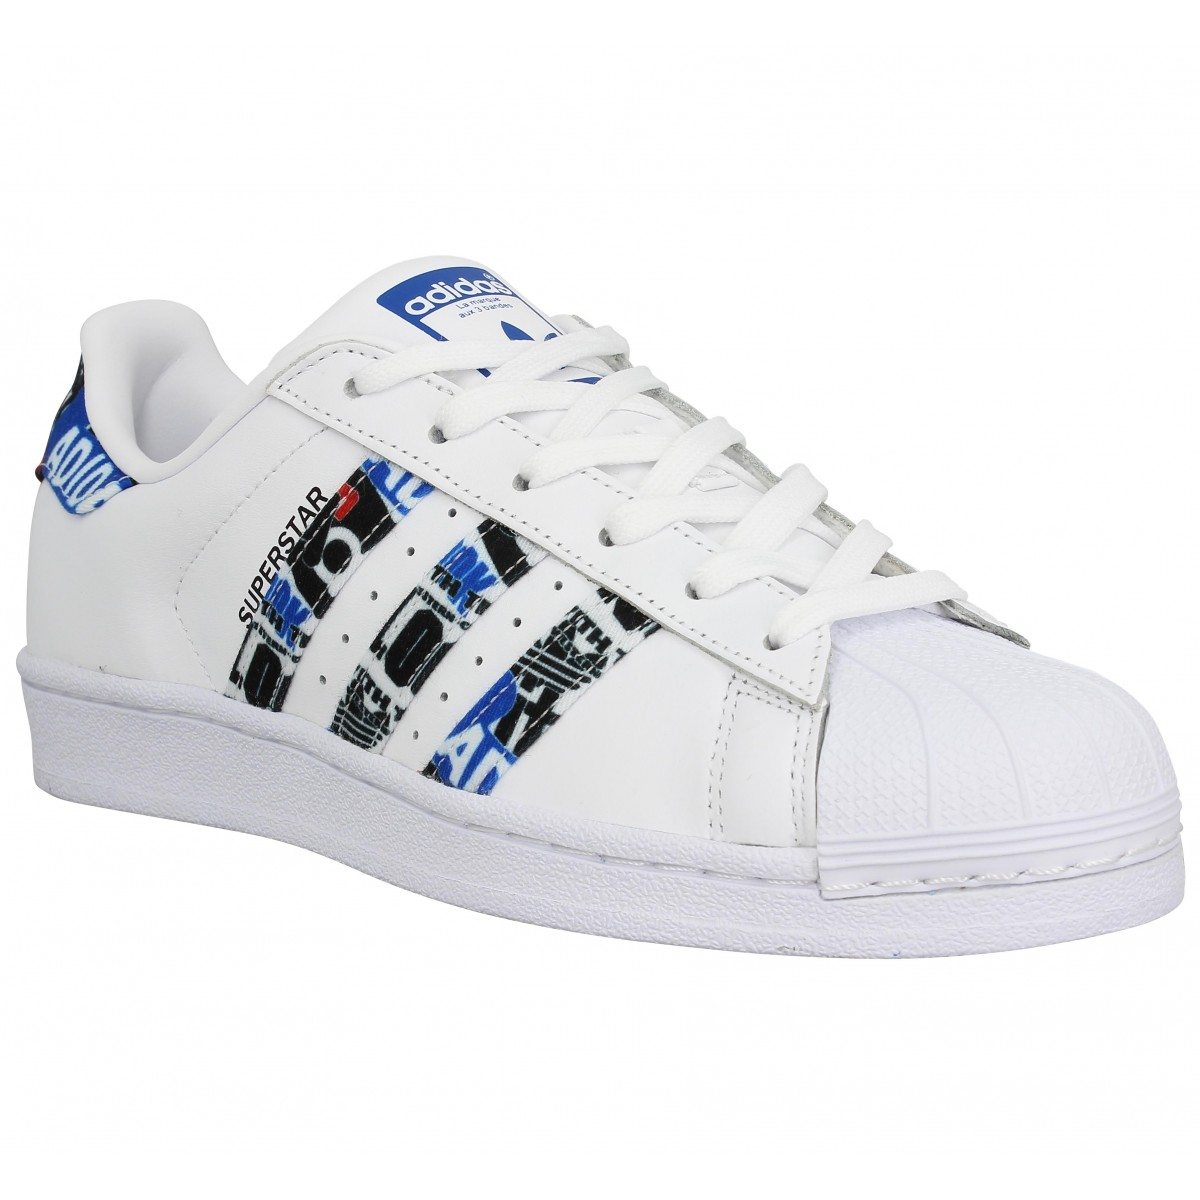 soldes adidas superstar cuir femme blanc bleu femme fanny chaussures. Black Bedroom Furniture Sets. Home Design Ideas